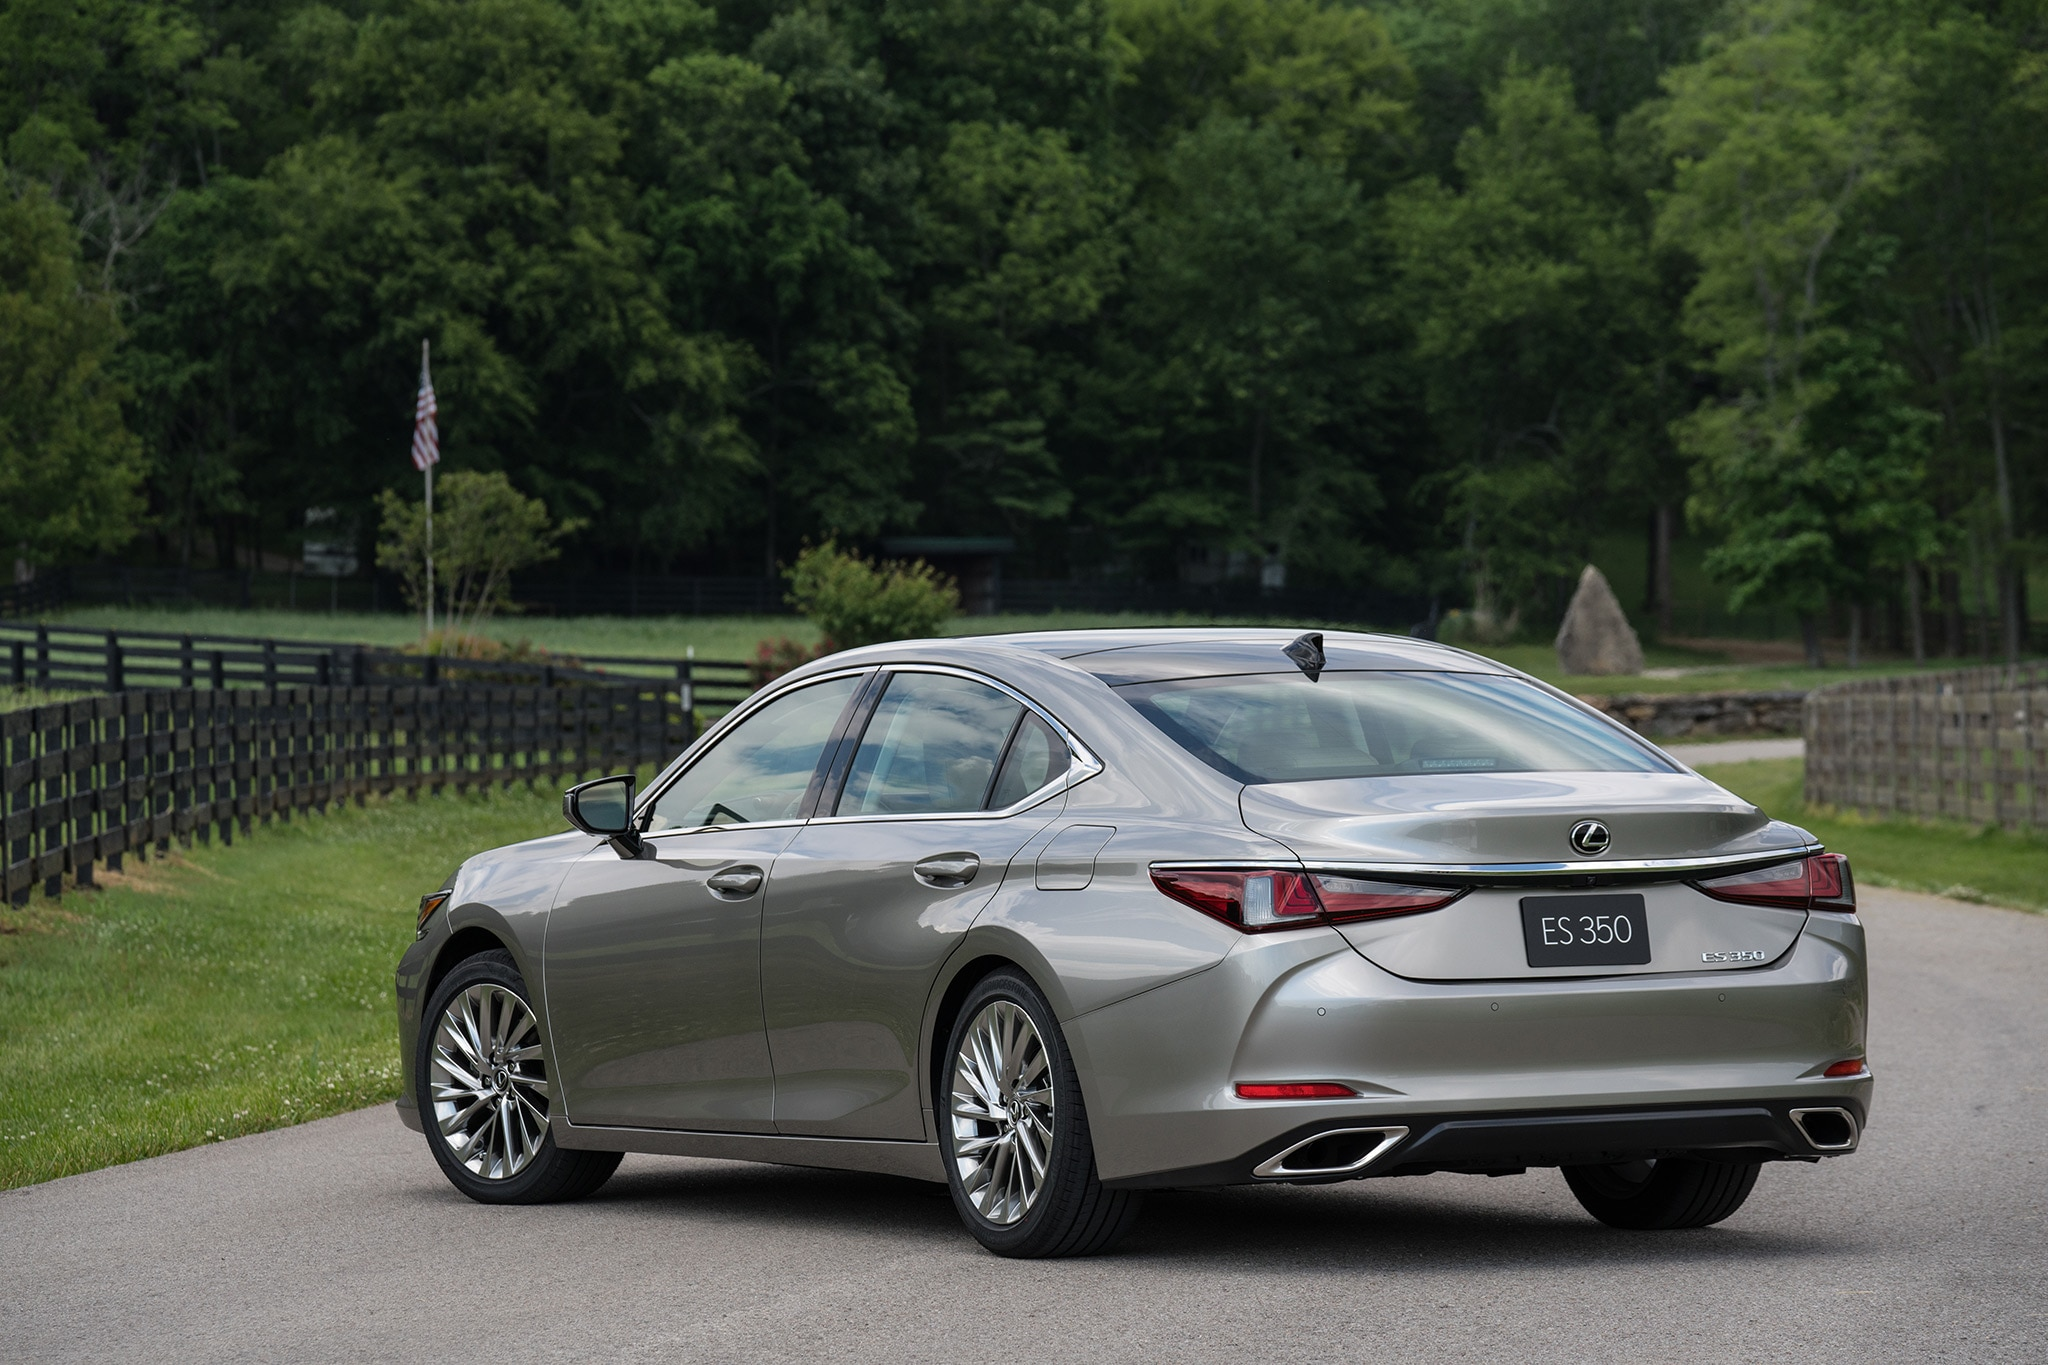 2019 lexus es350 2019 Lexus ES 350 First Drive Review | Automobile Magazine 2019 lexus es350